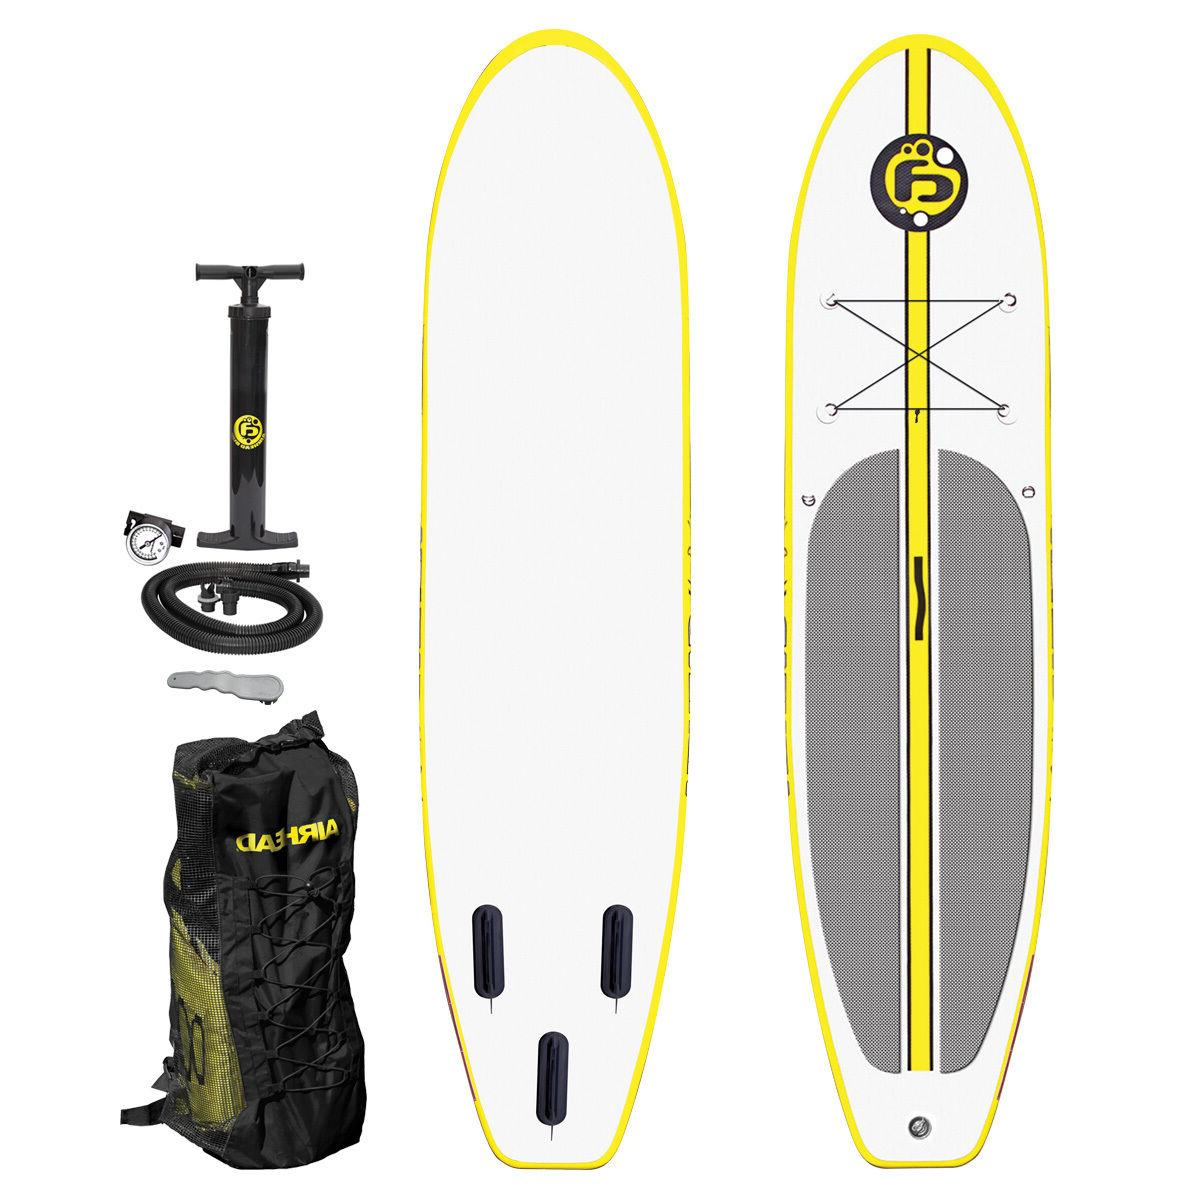 ahsup 1 stand paddleboard